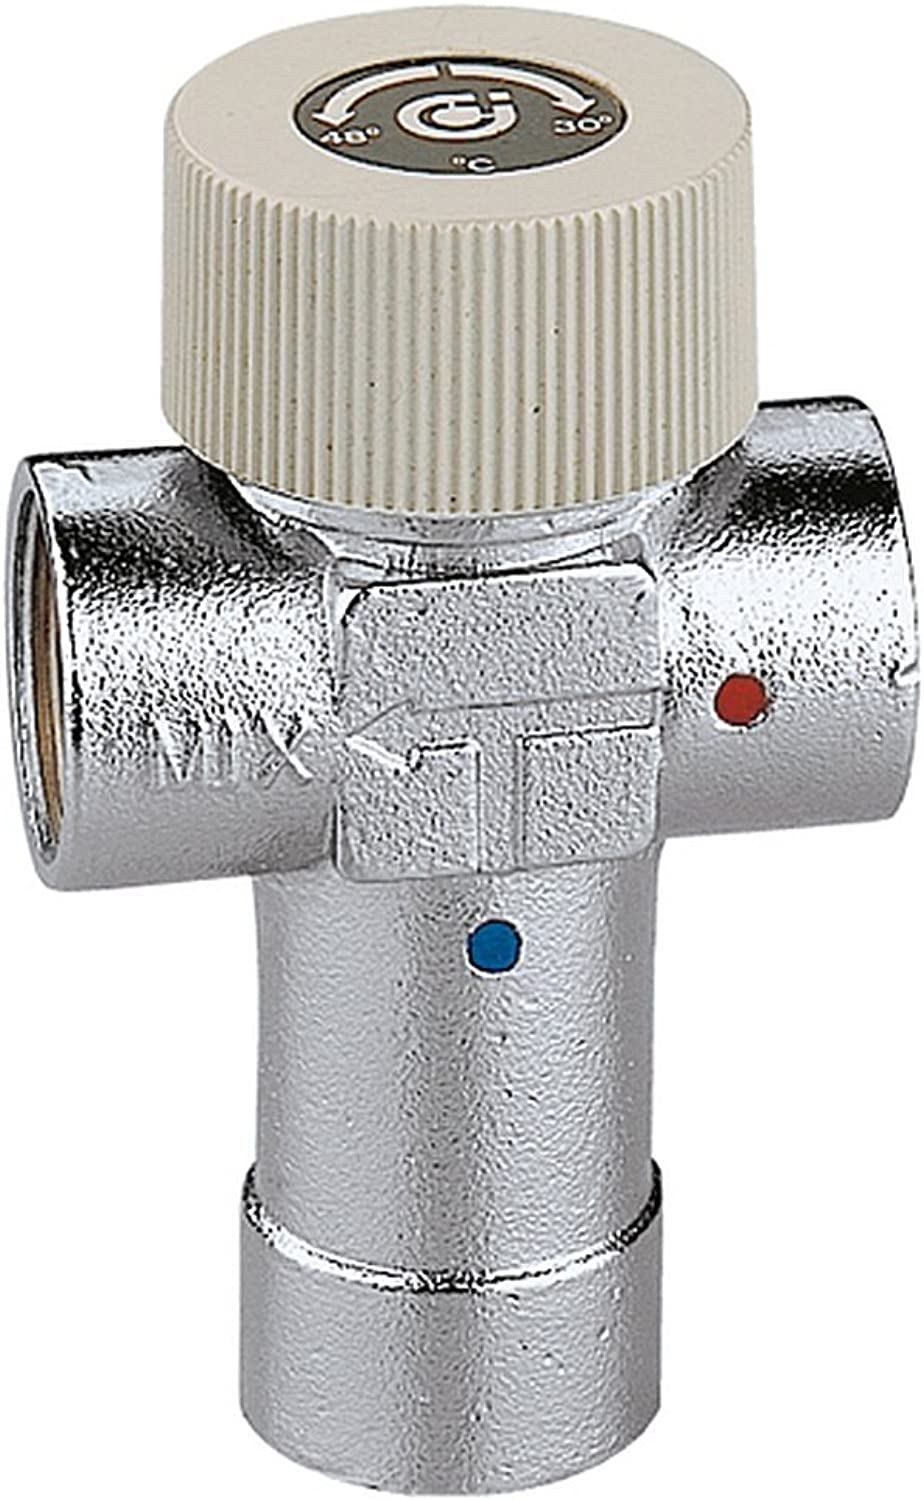 Caleffi 520440 Adjustable Thermostatic Mixing Valve 1 2 Inch 40 - 60 °C